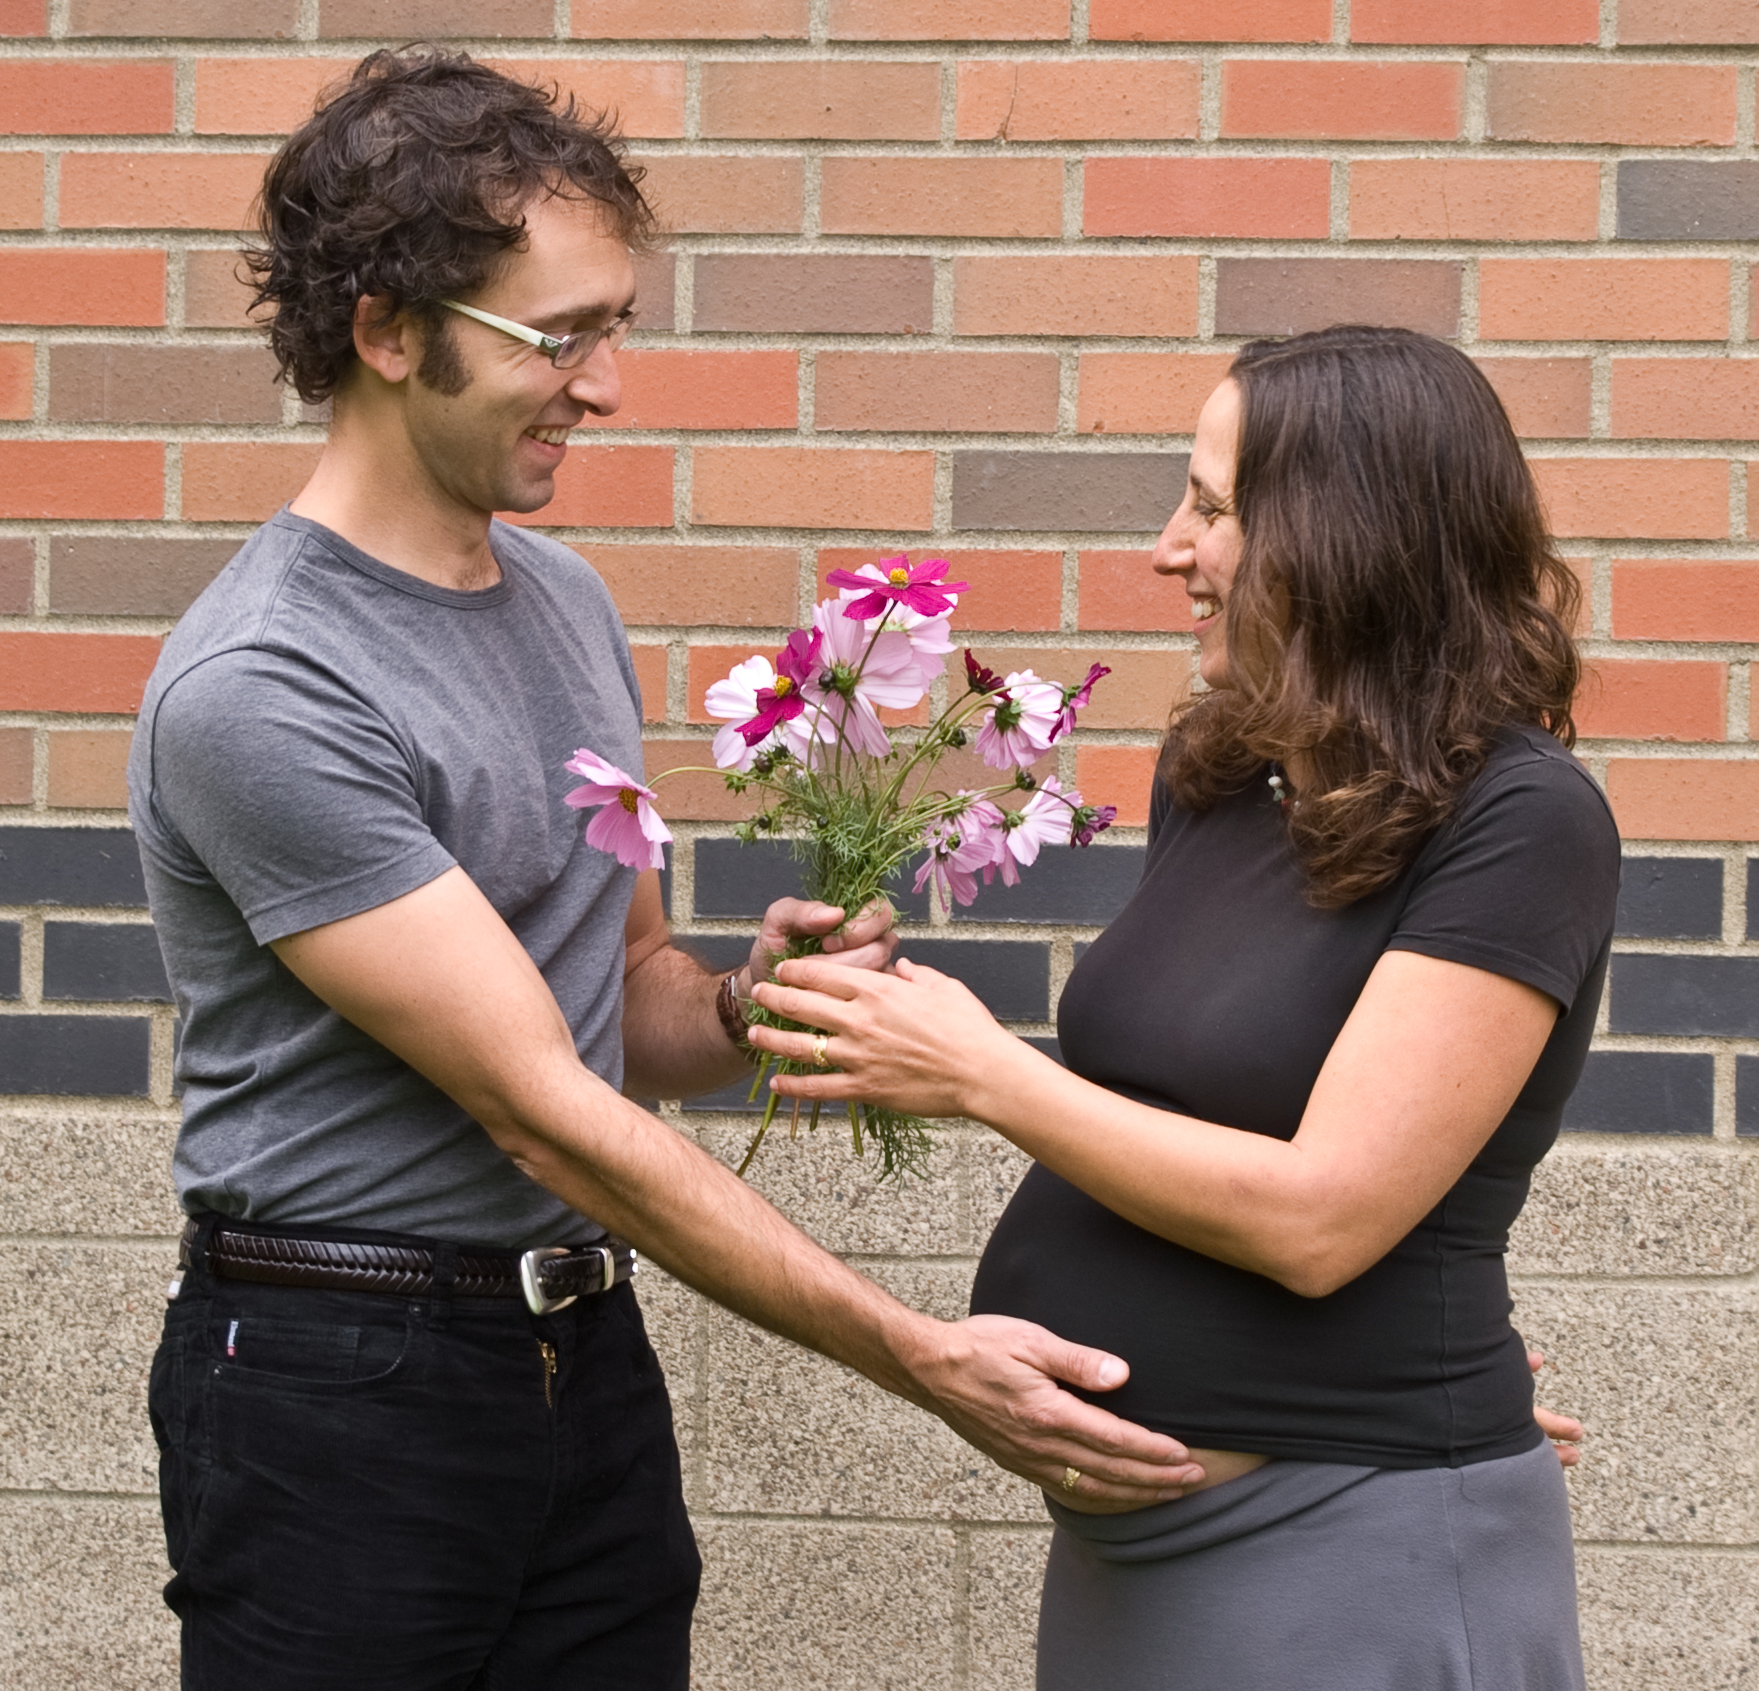 Your relationship with your husband matters during pregnancy